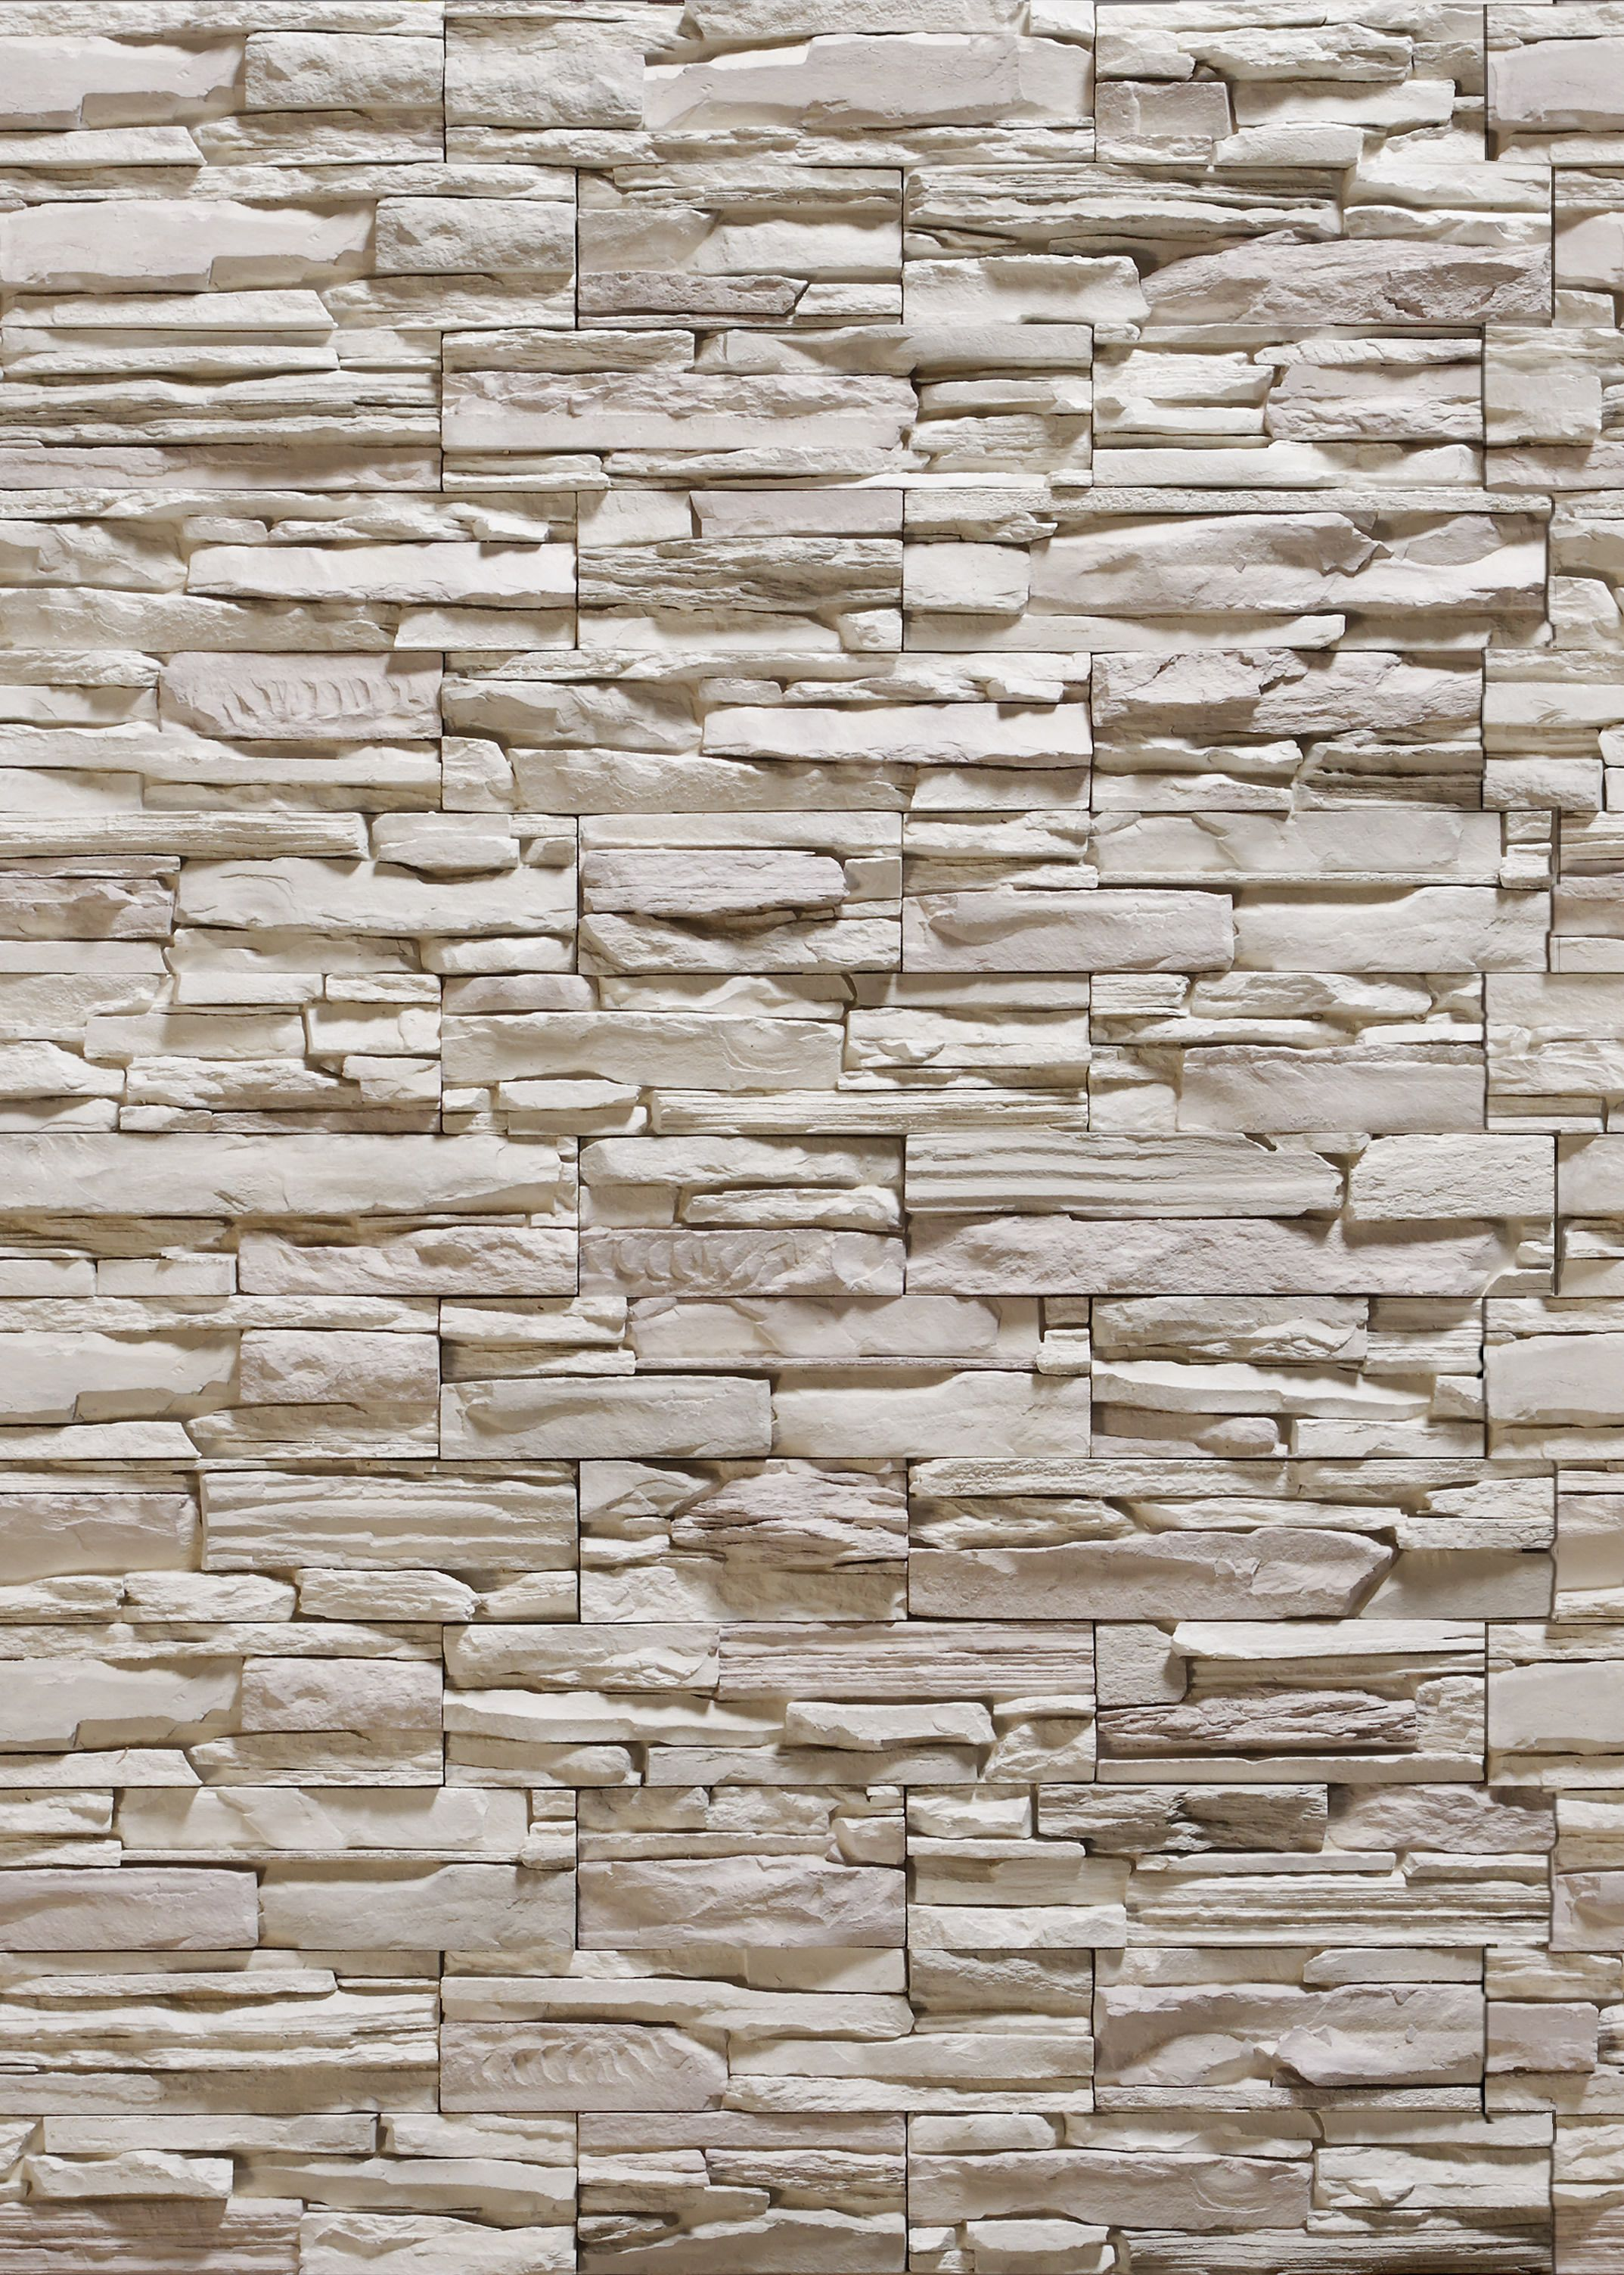 Dikij Stone Wall Texture Stone Stone Wall Download Background Stone Background Stone Texture Ceiling Texture Types Ceiling Texture